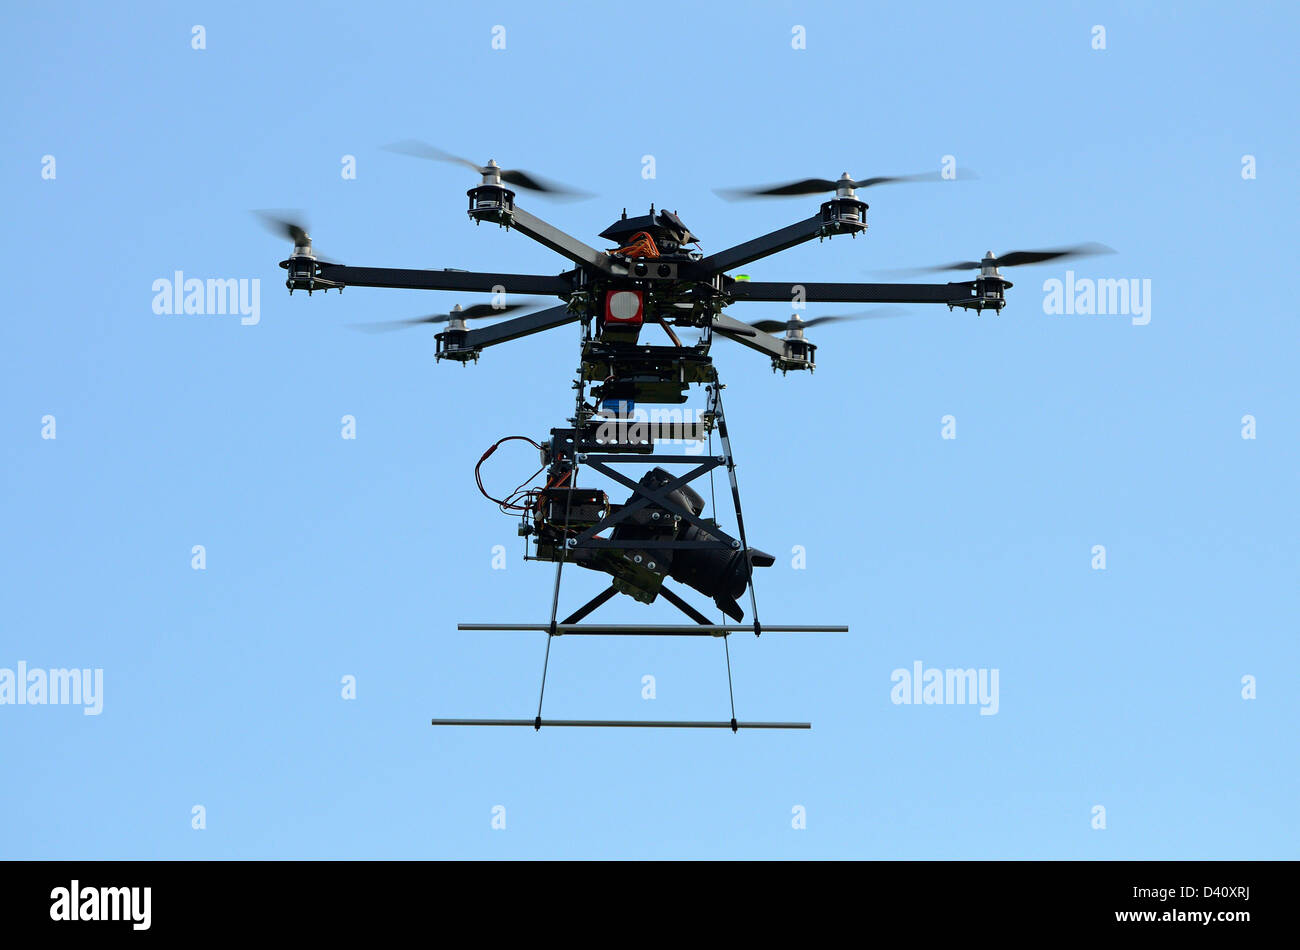 Drone in flight and Digital camera on a flying Unmanned Aerial Vehicle (UAV), with six rotors, used aerial photography - Stock Image